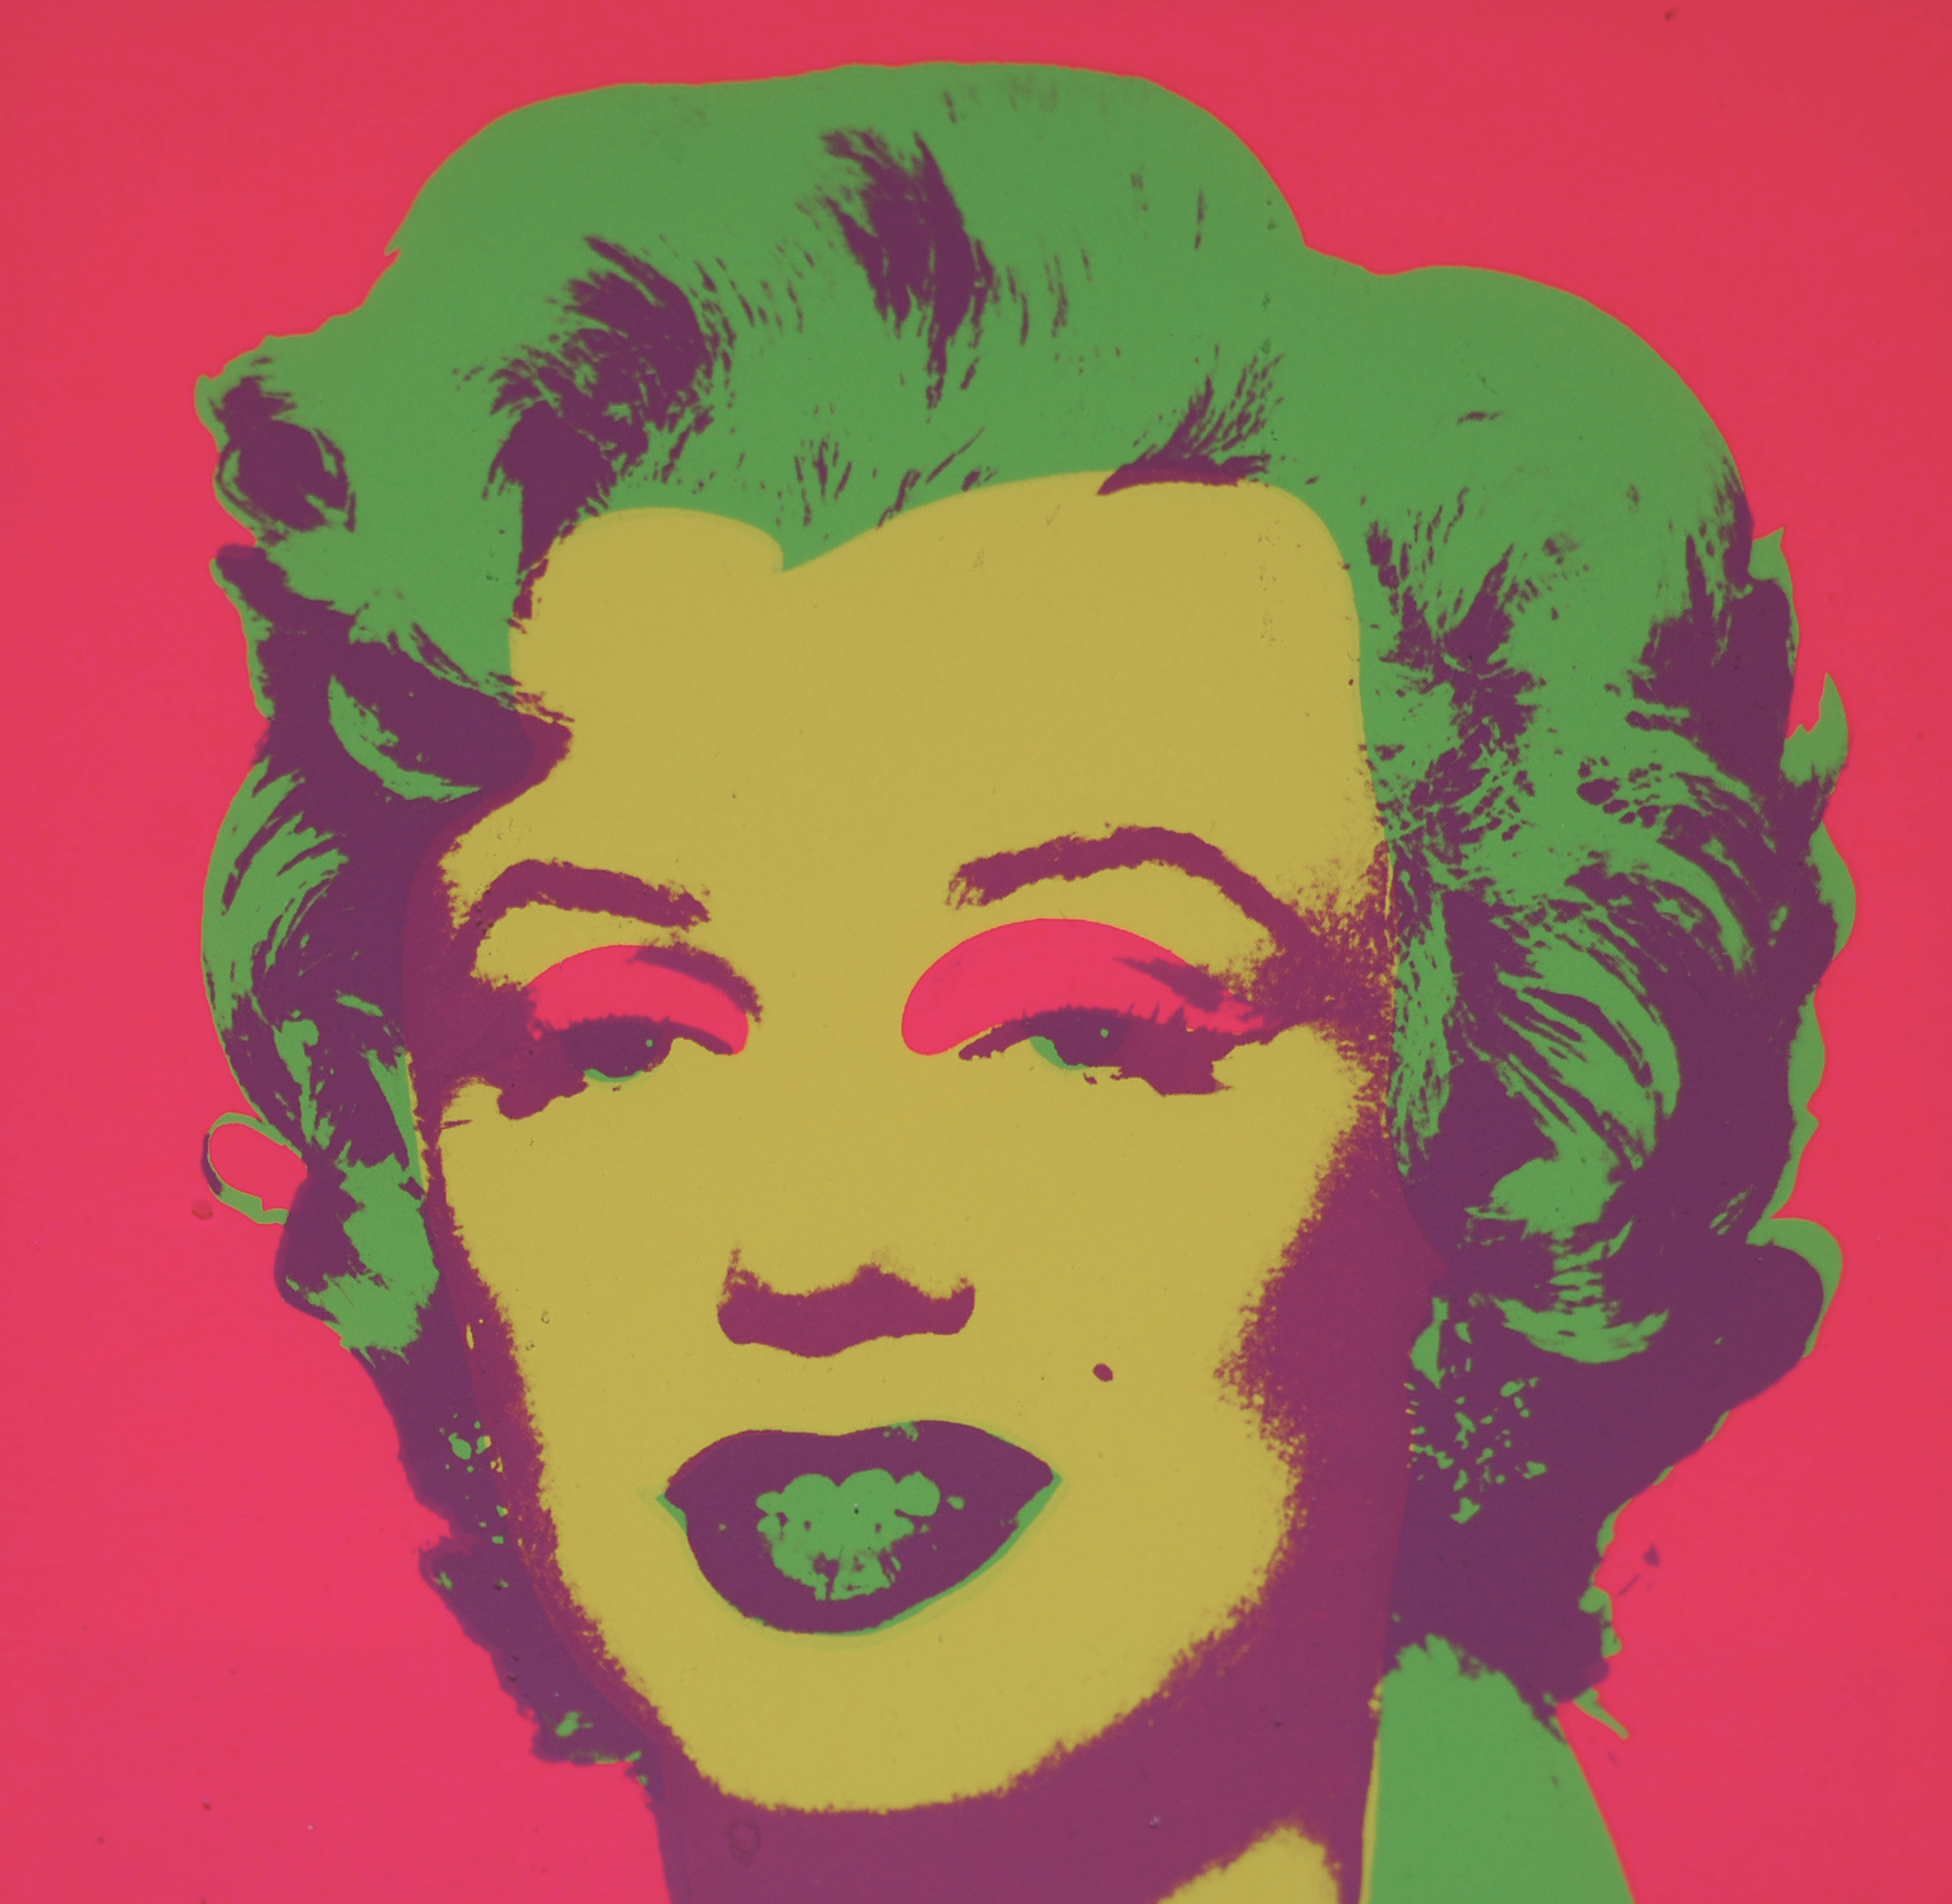 Marilyn FS 21 by Andy Warhol